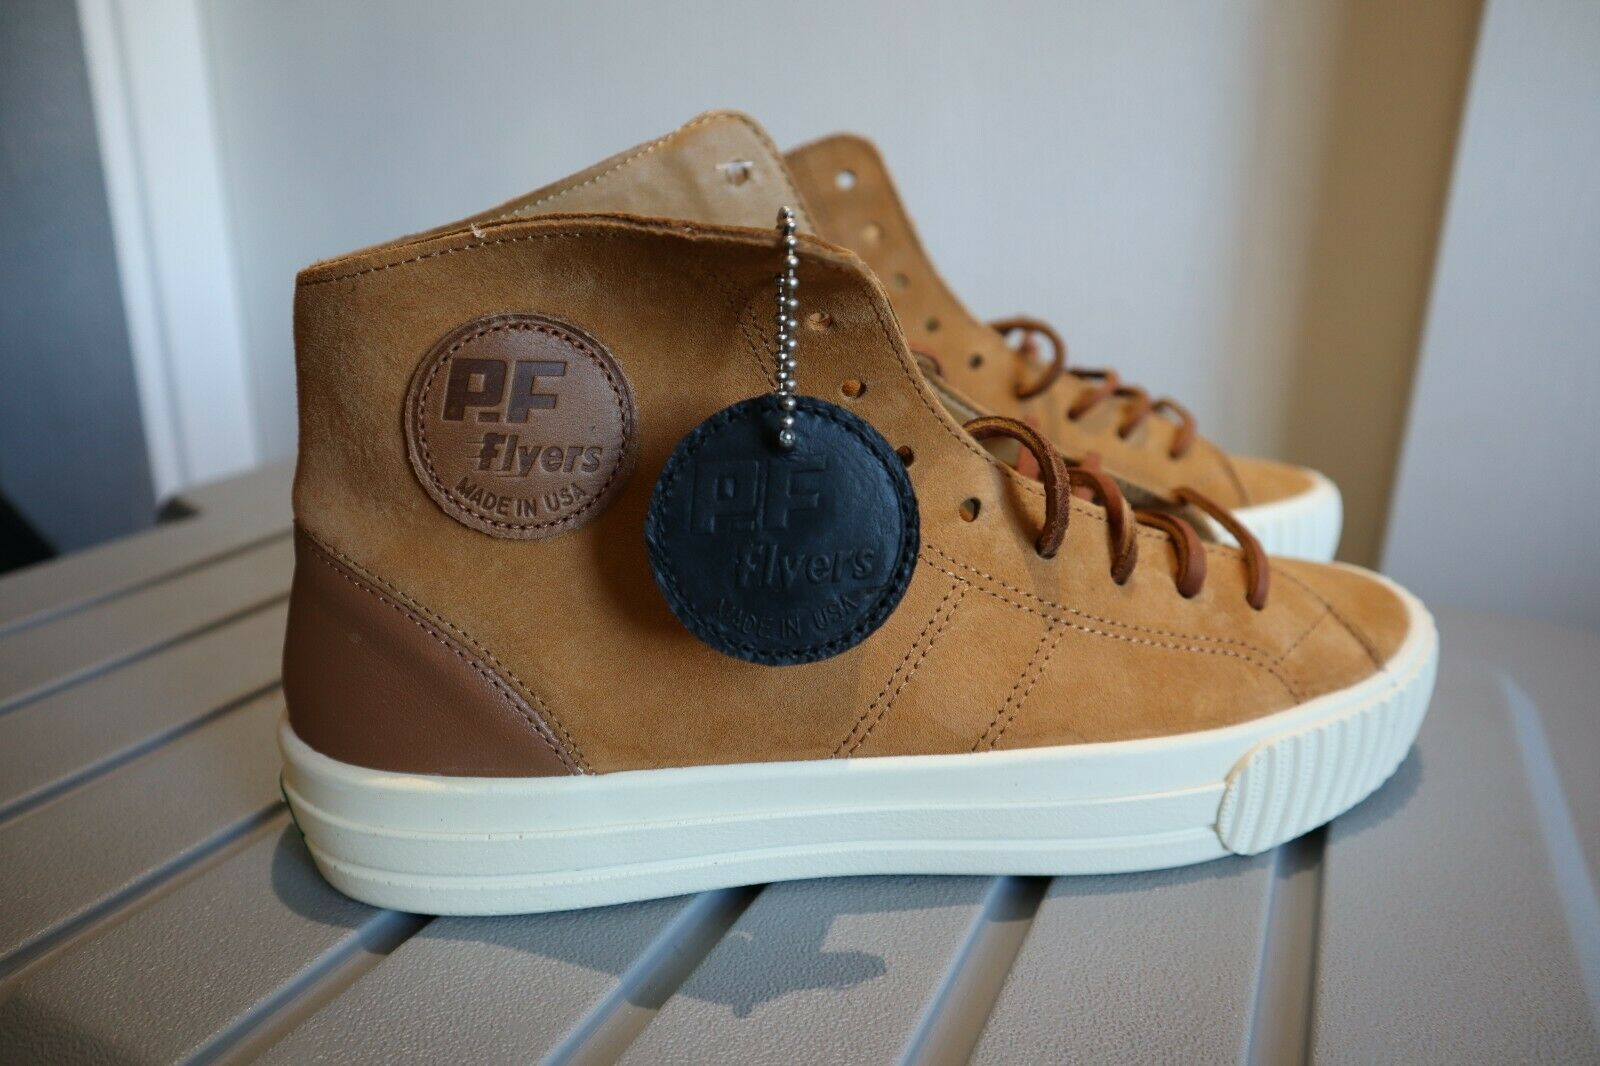 PF Flyers Center Hi shoes Made in USA Nutmeg White Mens size 7.5